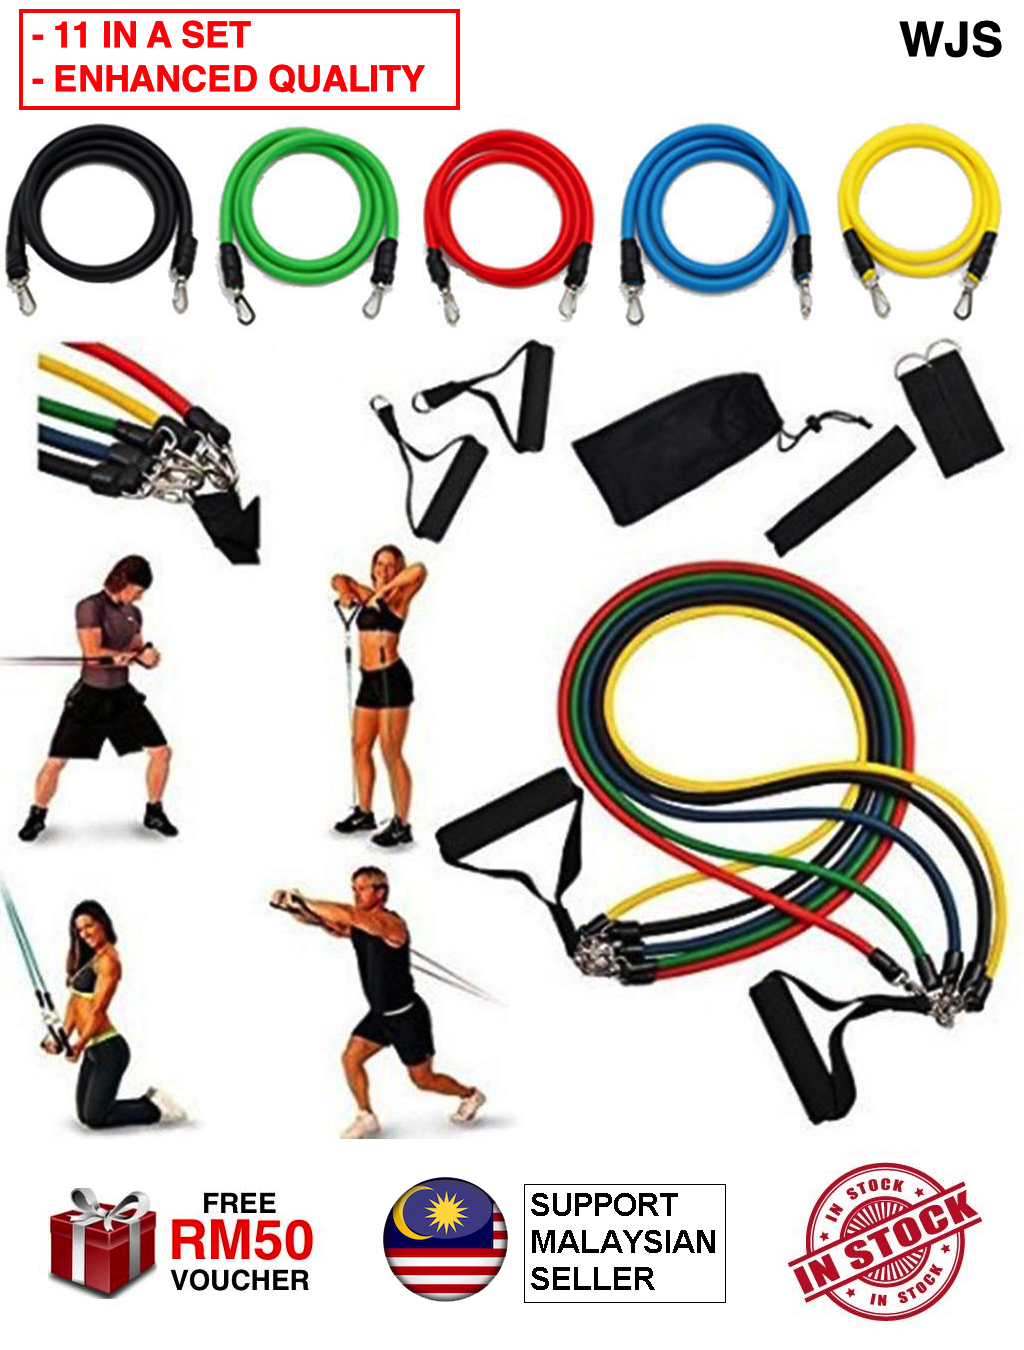 (FREE CARRY BAG) WJS 11pcs 11 pcs Enhanced Quality Pilate Resistance Exercise Band Set Yoga Pilates Abs Fitness Tube Workout Bands Home Gym Cardio Stretch Band MULTICOLOR [FREEM RM 50 VOUCHER]